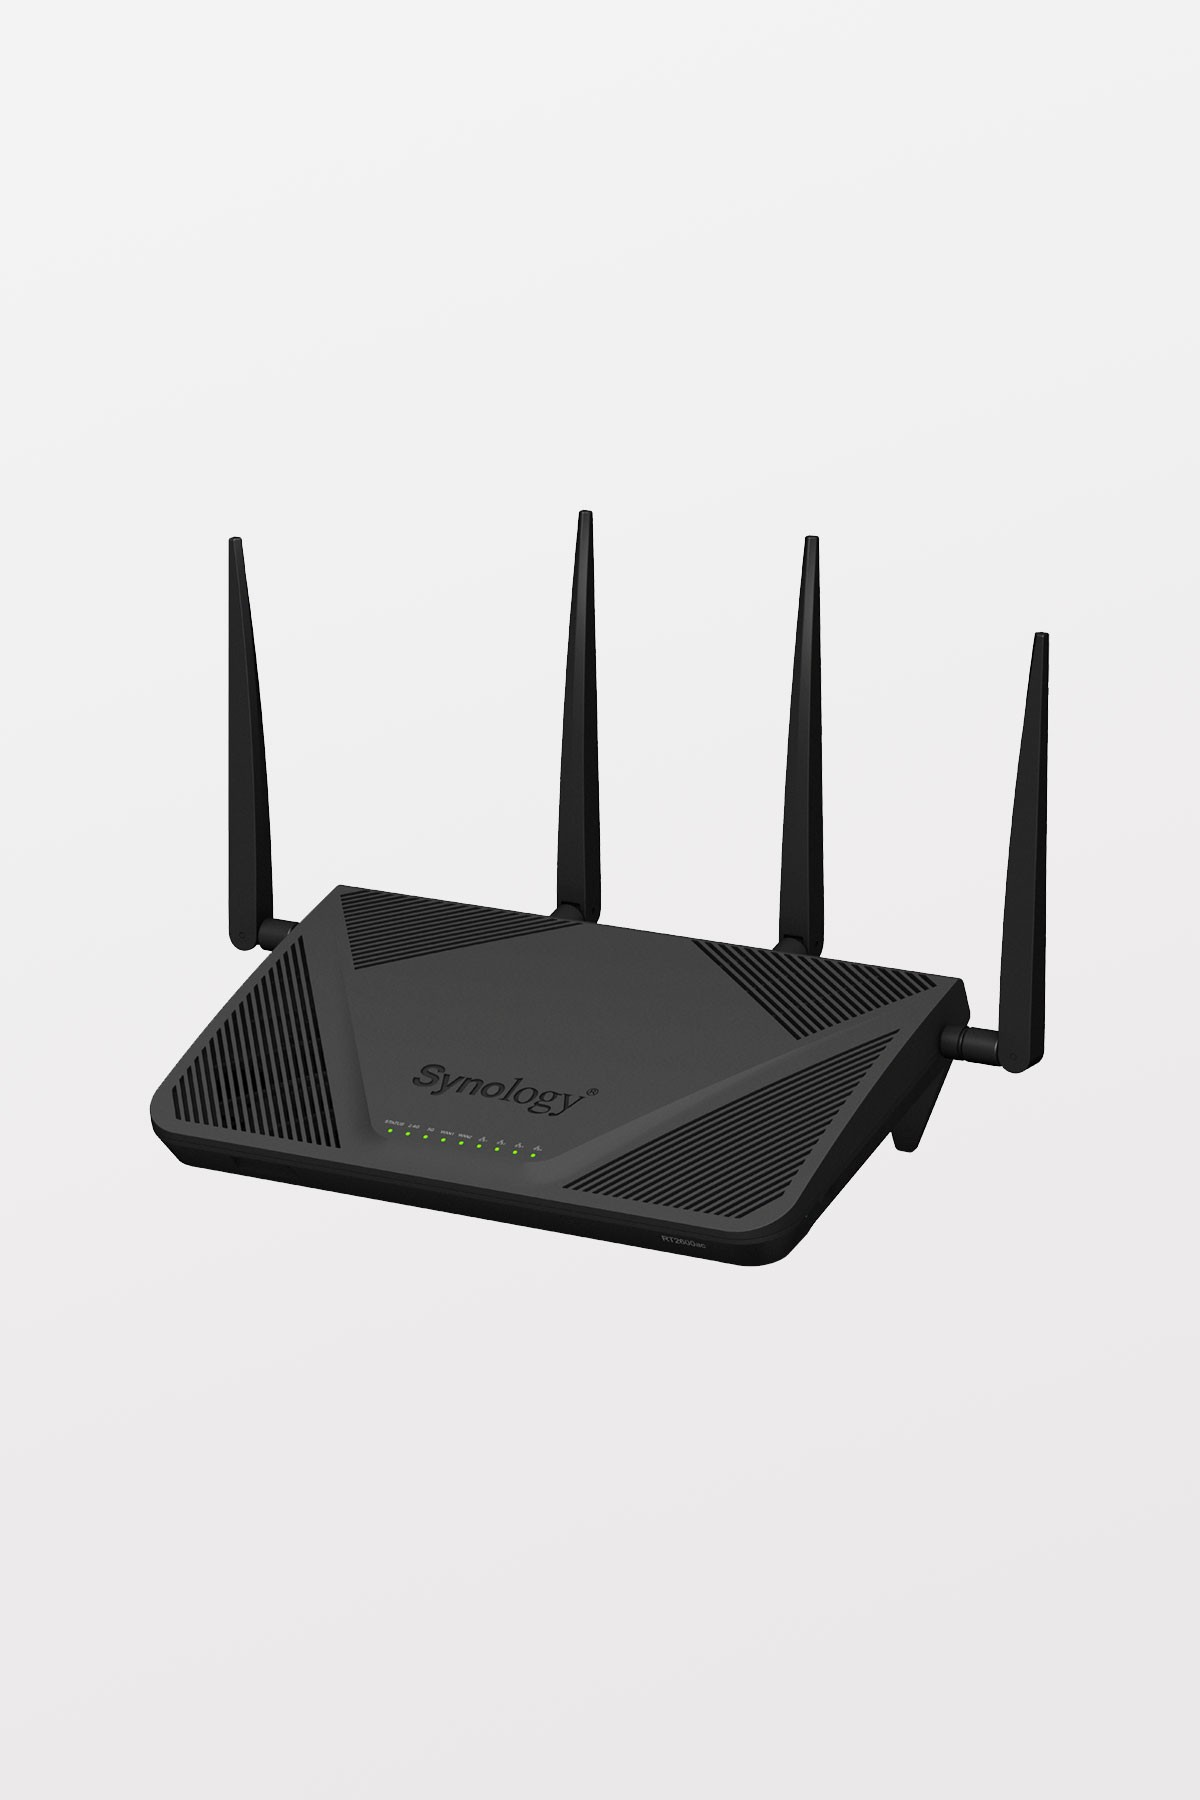 Synology RT2600ac Wireless AC Router